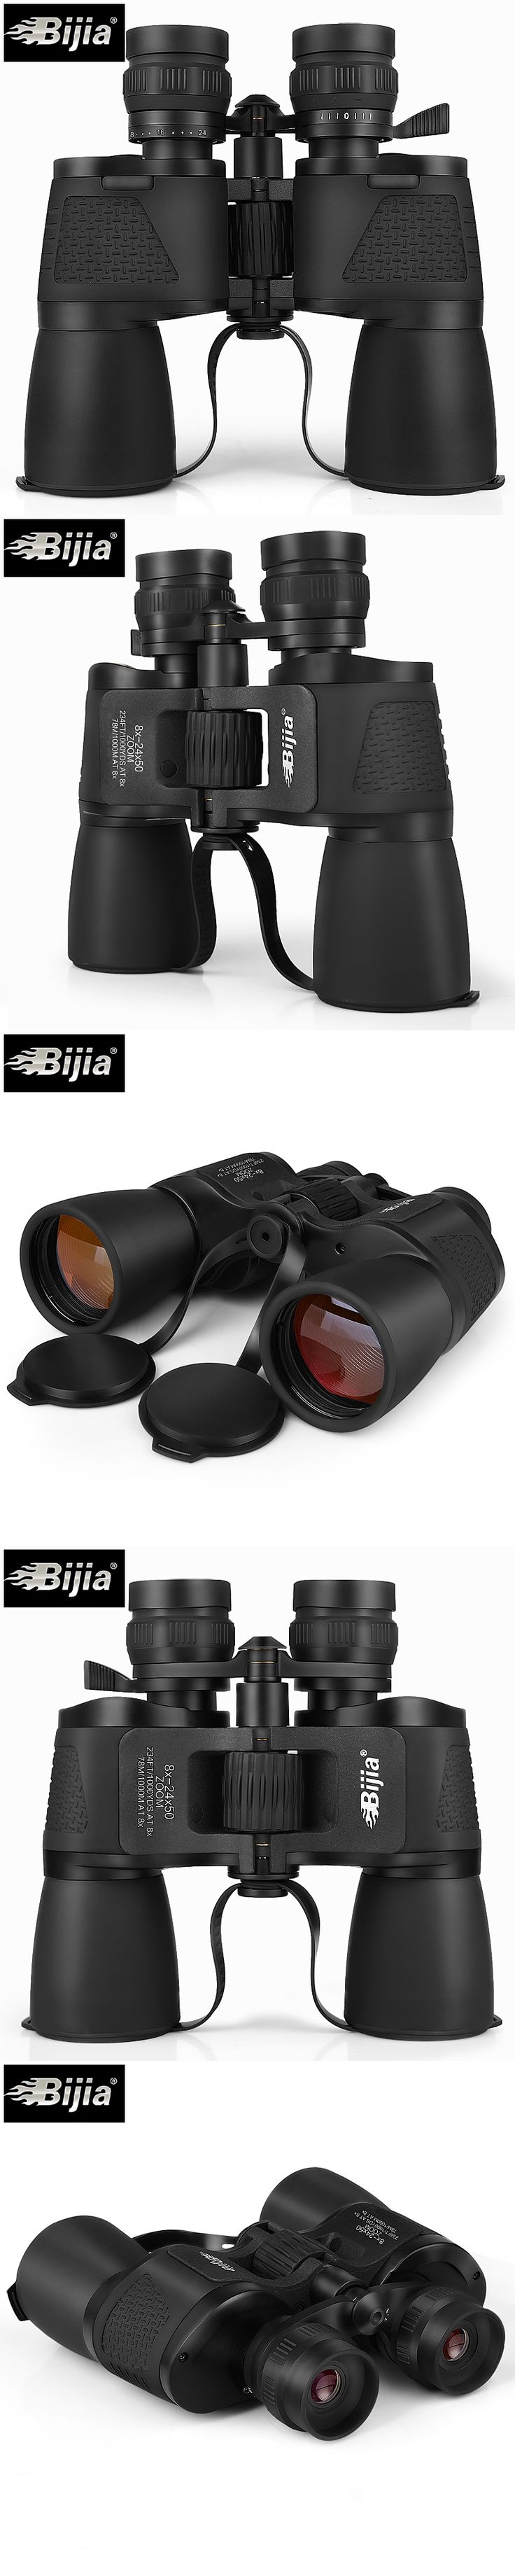 BIJIA 8-24X50 high quality powerful binoculars long range zoom hunting Telescope professional high definition waterproof